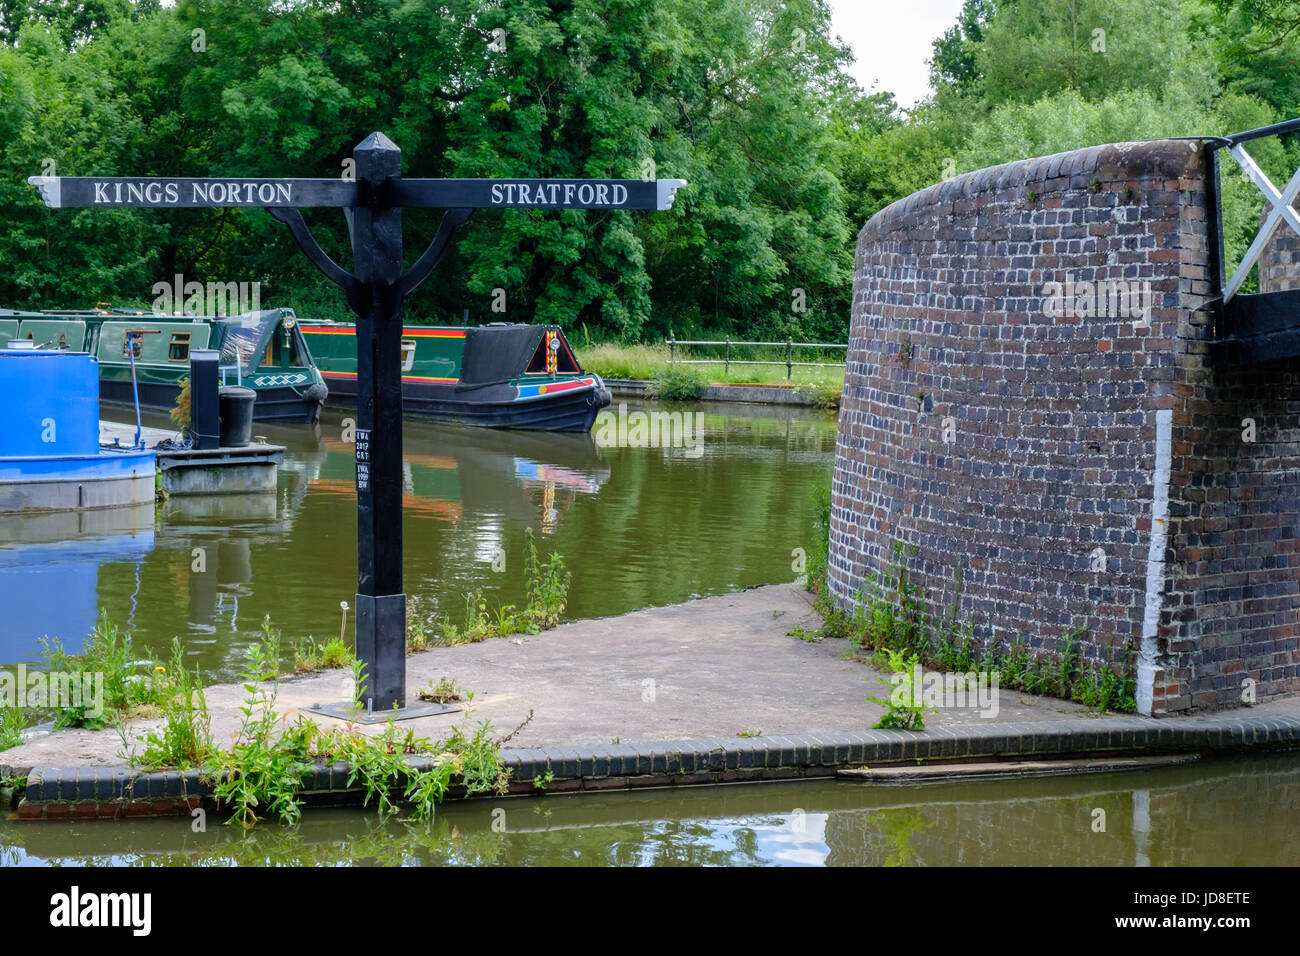 Birmingham Canal junction with direction sign to Kings Norton and Stratford - Stock Image